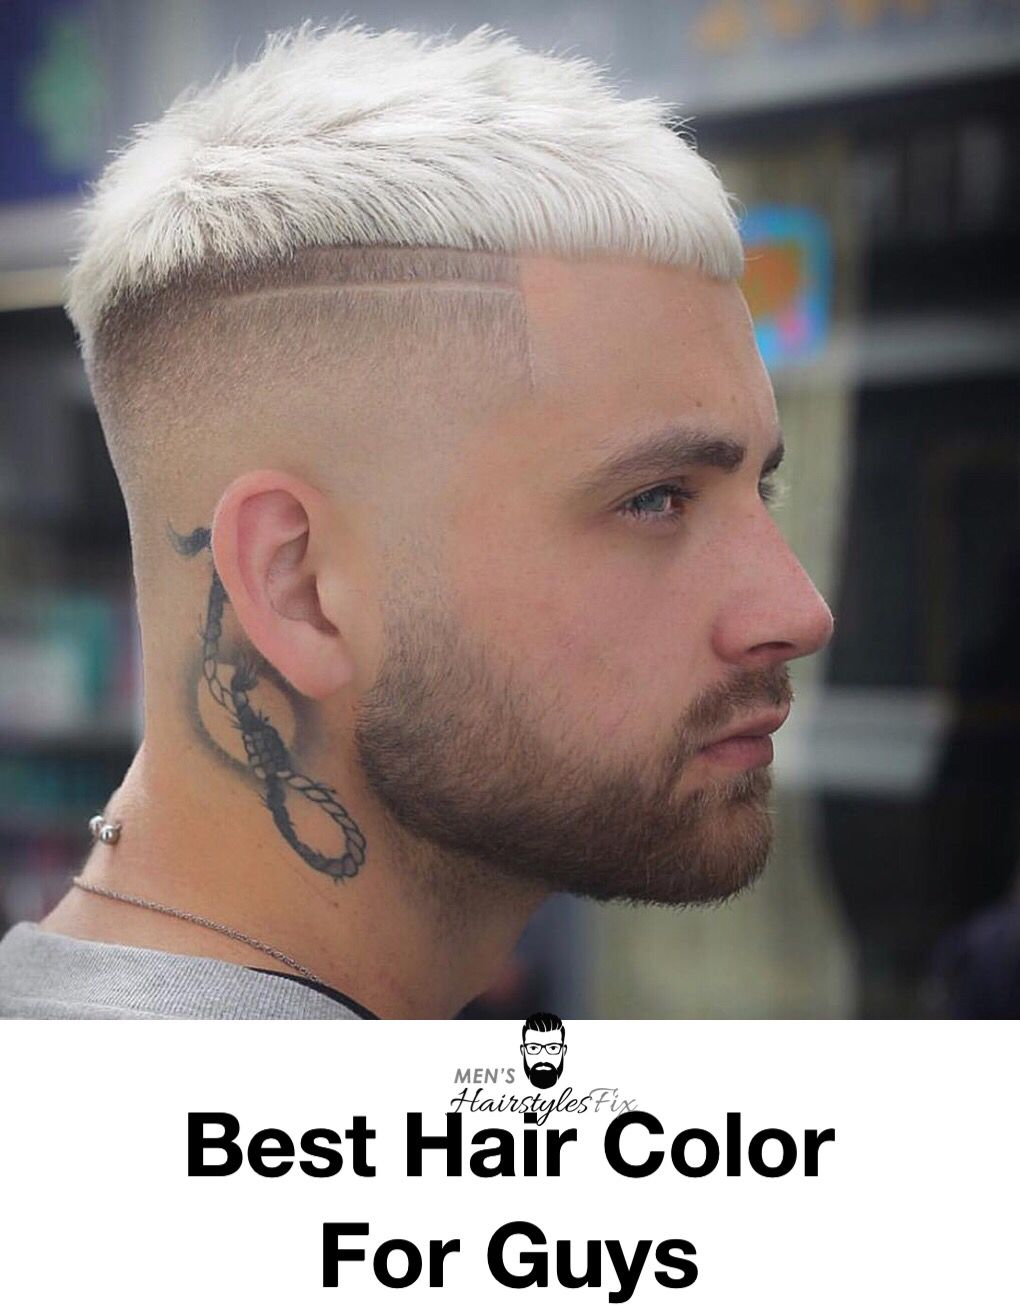 20 Best Hair Color For Guys In 2018 Mens Hairstyles 2018 Cool Hairstyles For Men Mens Hairstyles Short